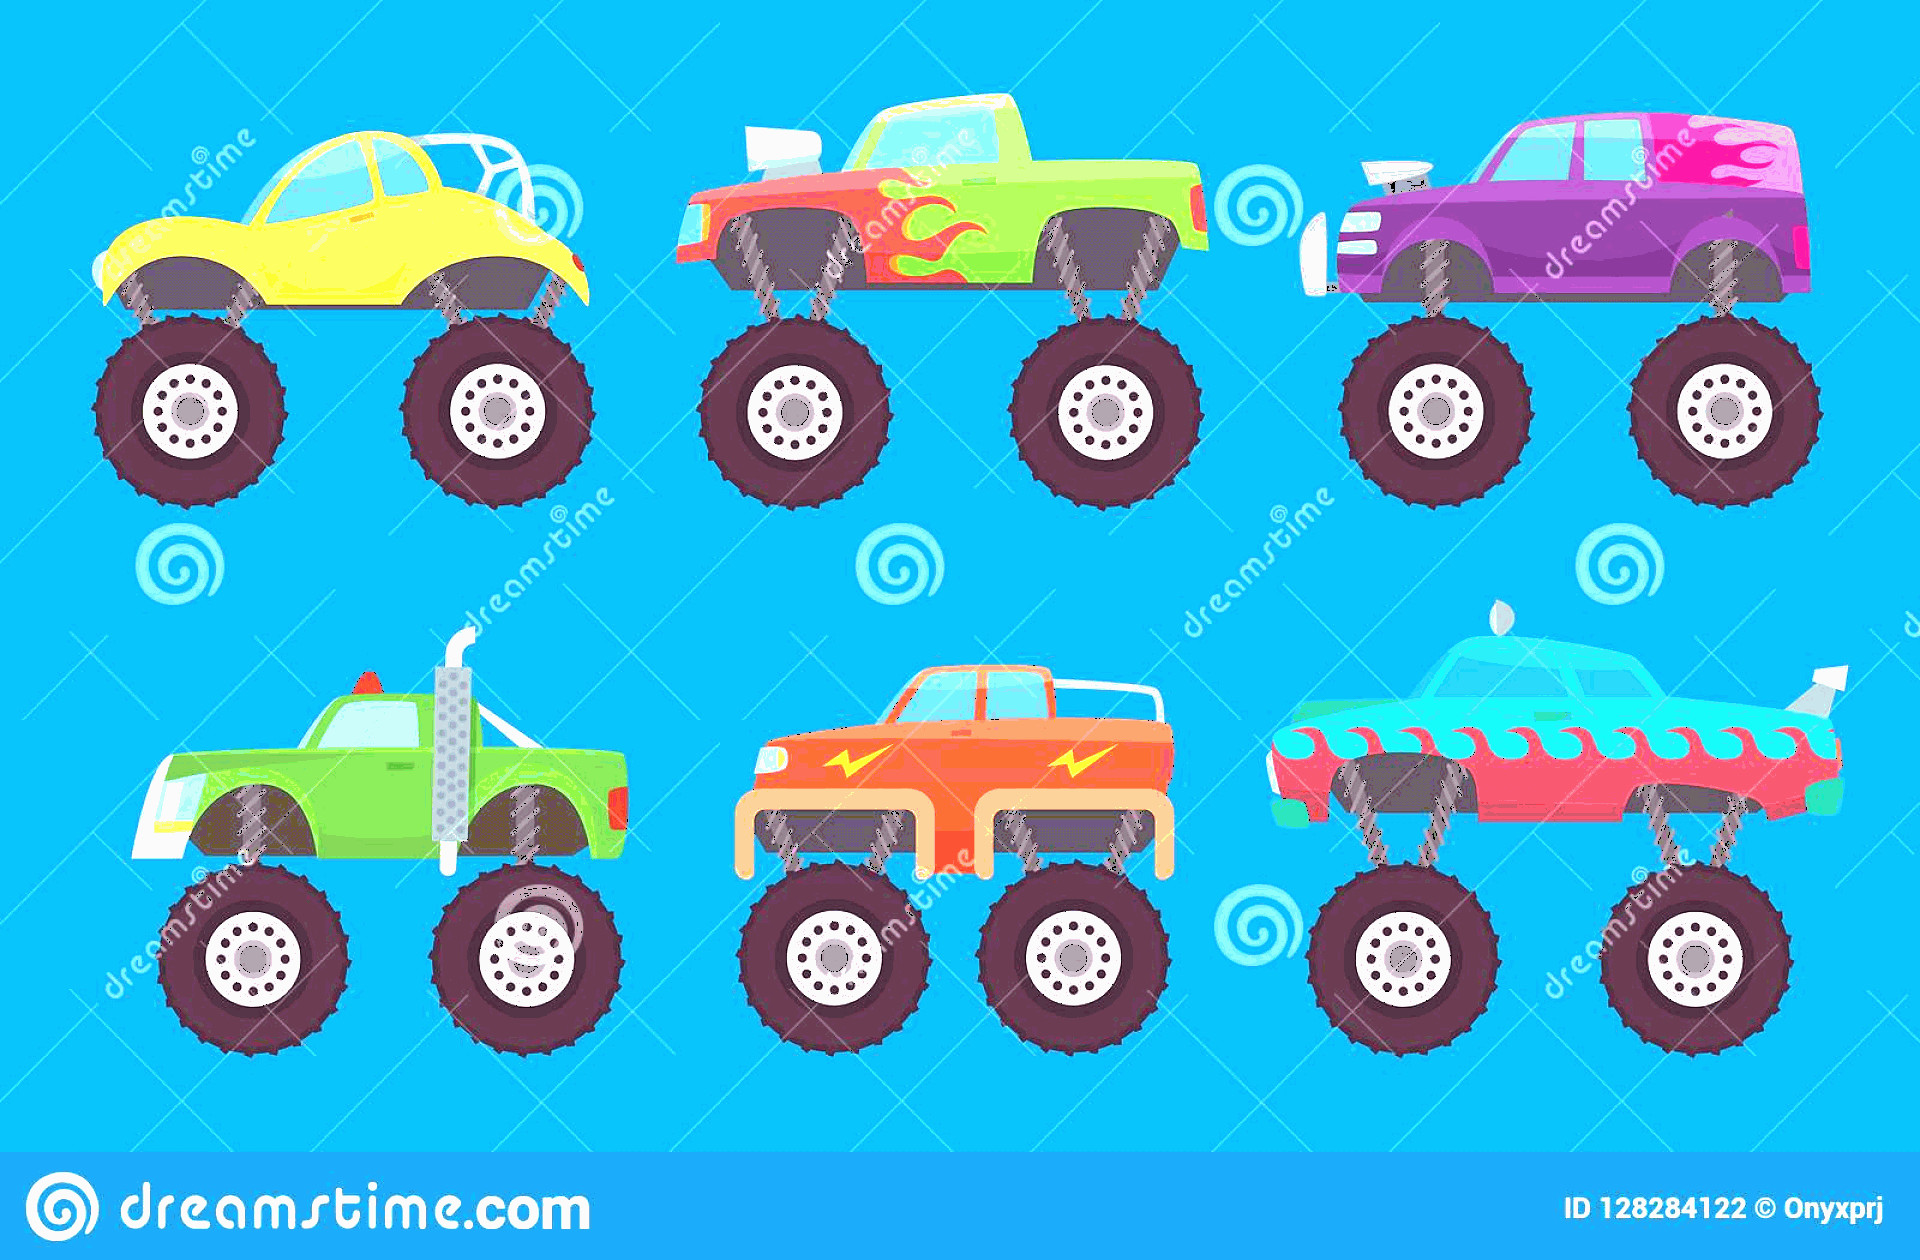 Monster Truck Tires Vector: Monster Truck Cars Automobiles Big Wheels Creature Auto Toy Kids Vector Pictures Isolated Illustration Car Model Image